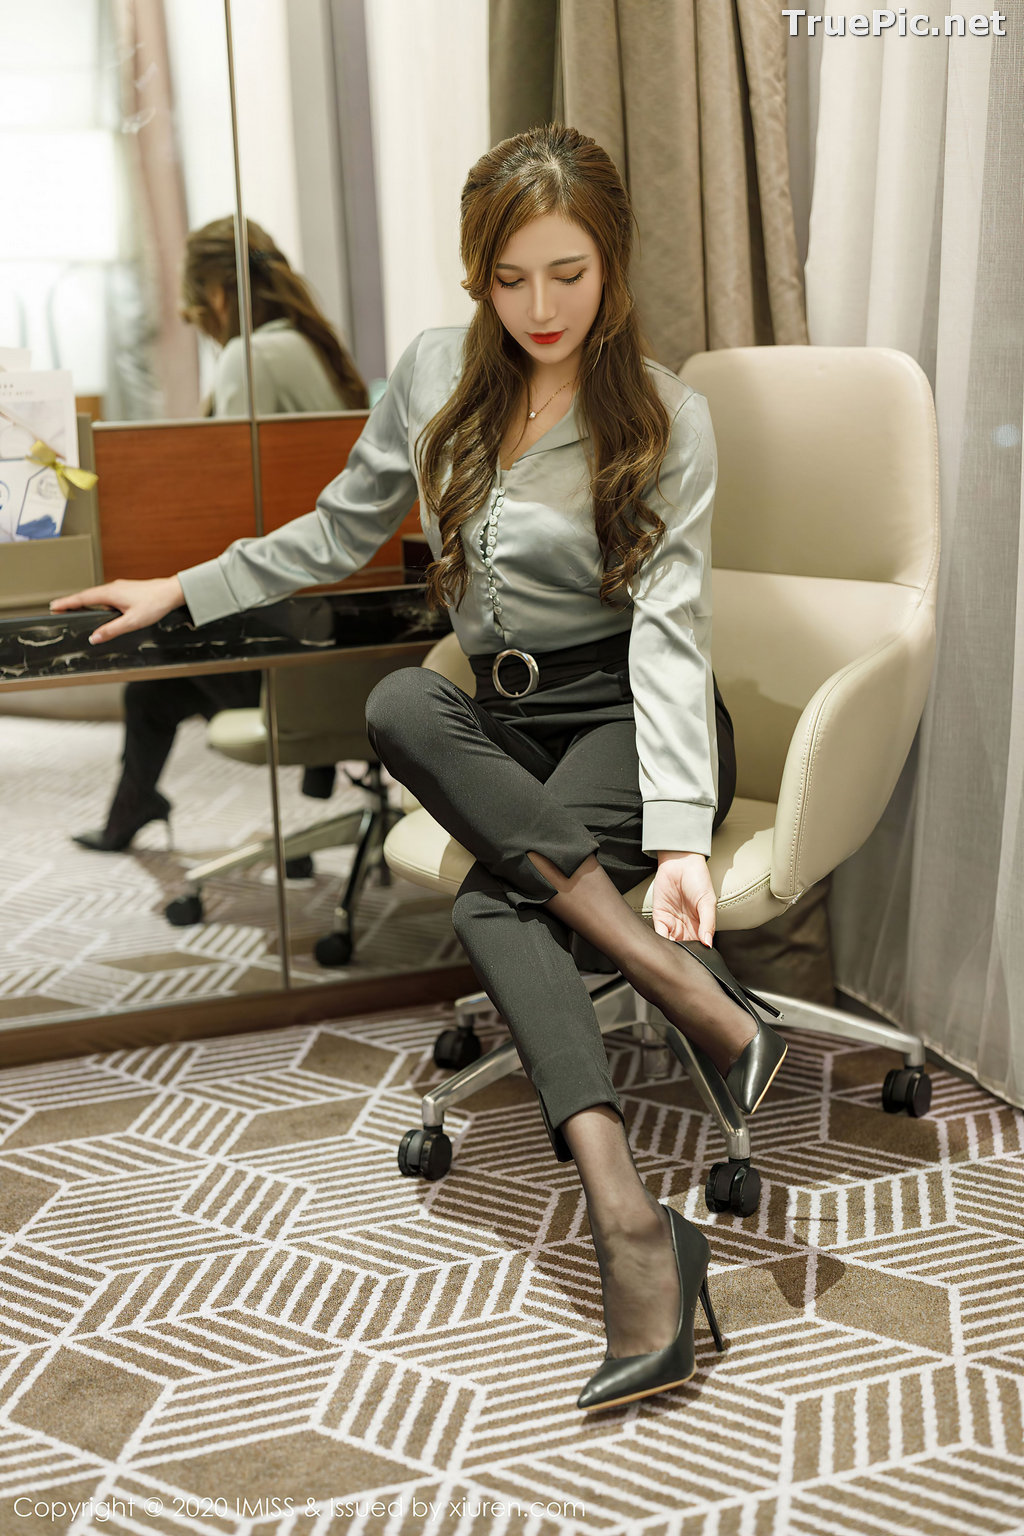 Image IMISS Vol.492 - Chinese Model - Lavinia肉肉 - Long Legs Office Girl - TruePic.net - Picture-3